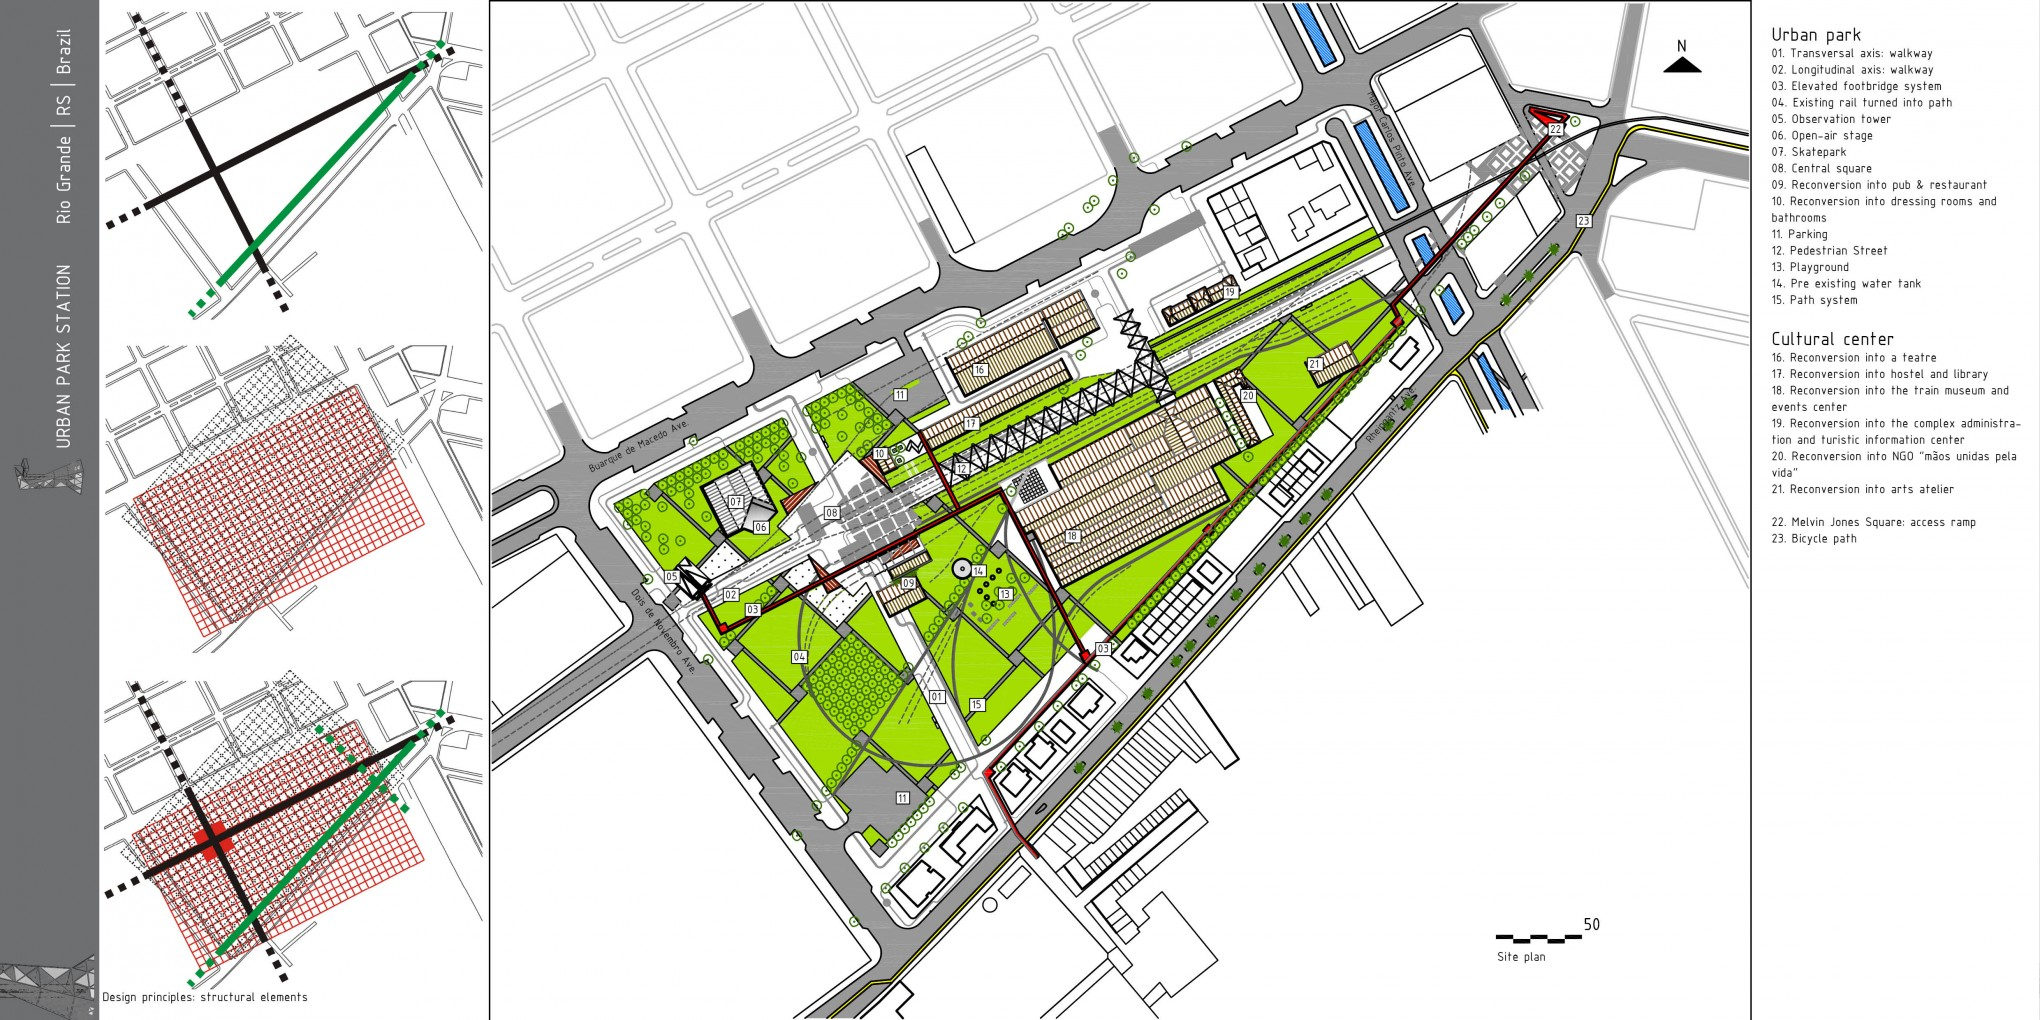 Archiprix 2011 urban station park Site plan design